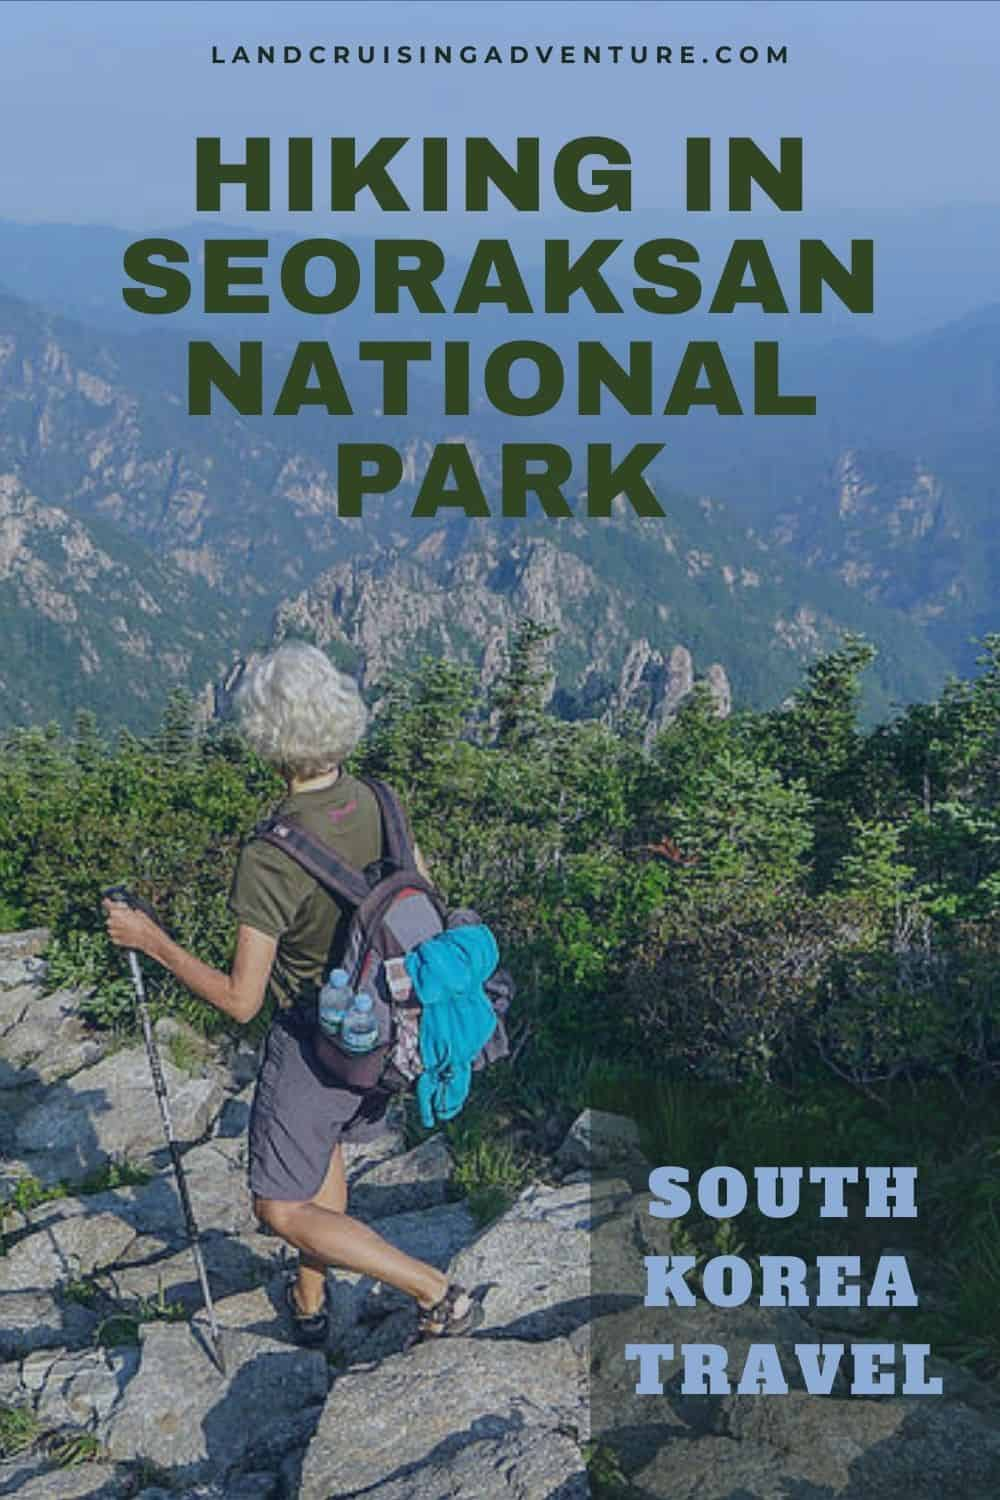 Hiking in Seoraksan National Park